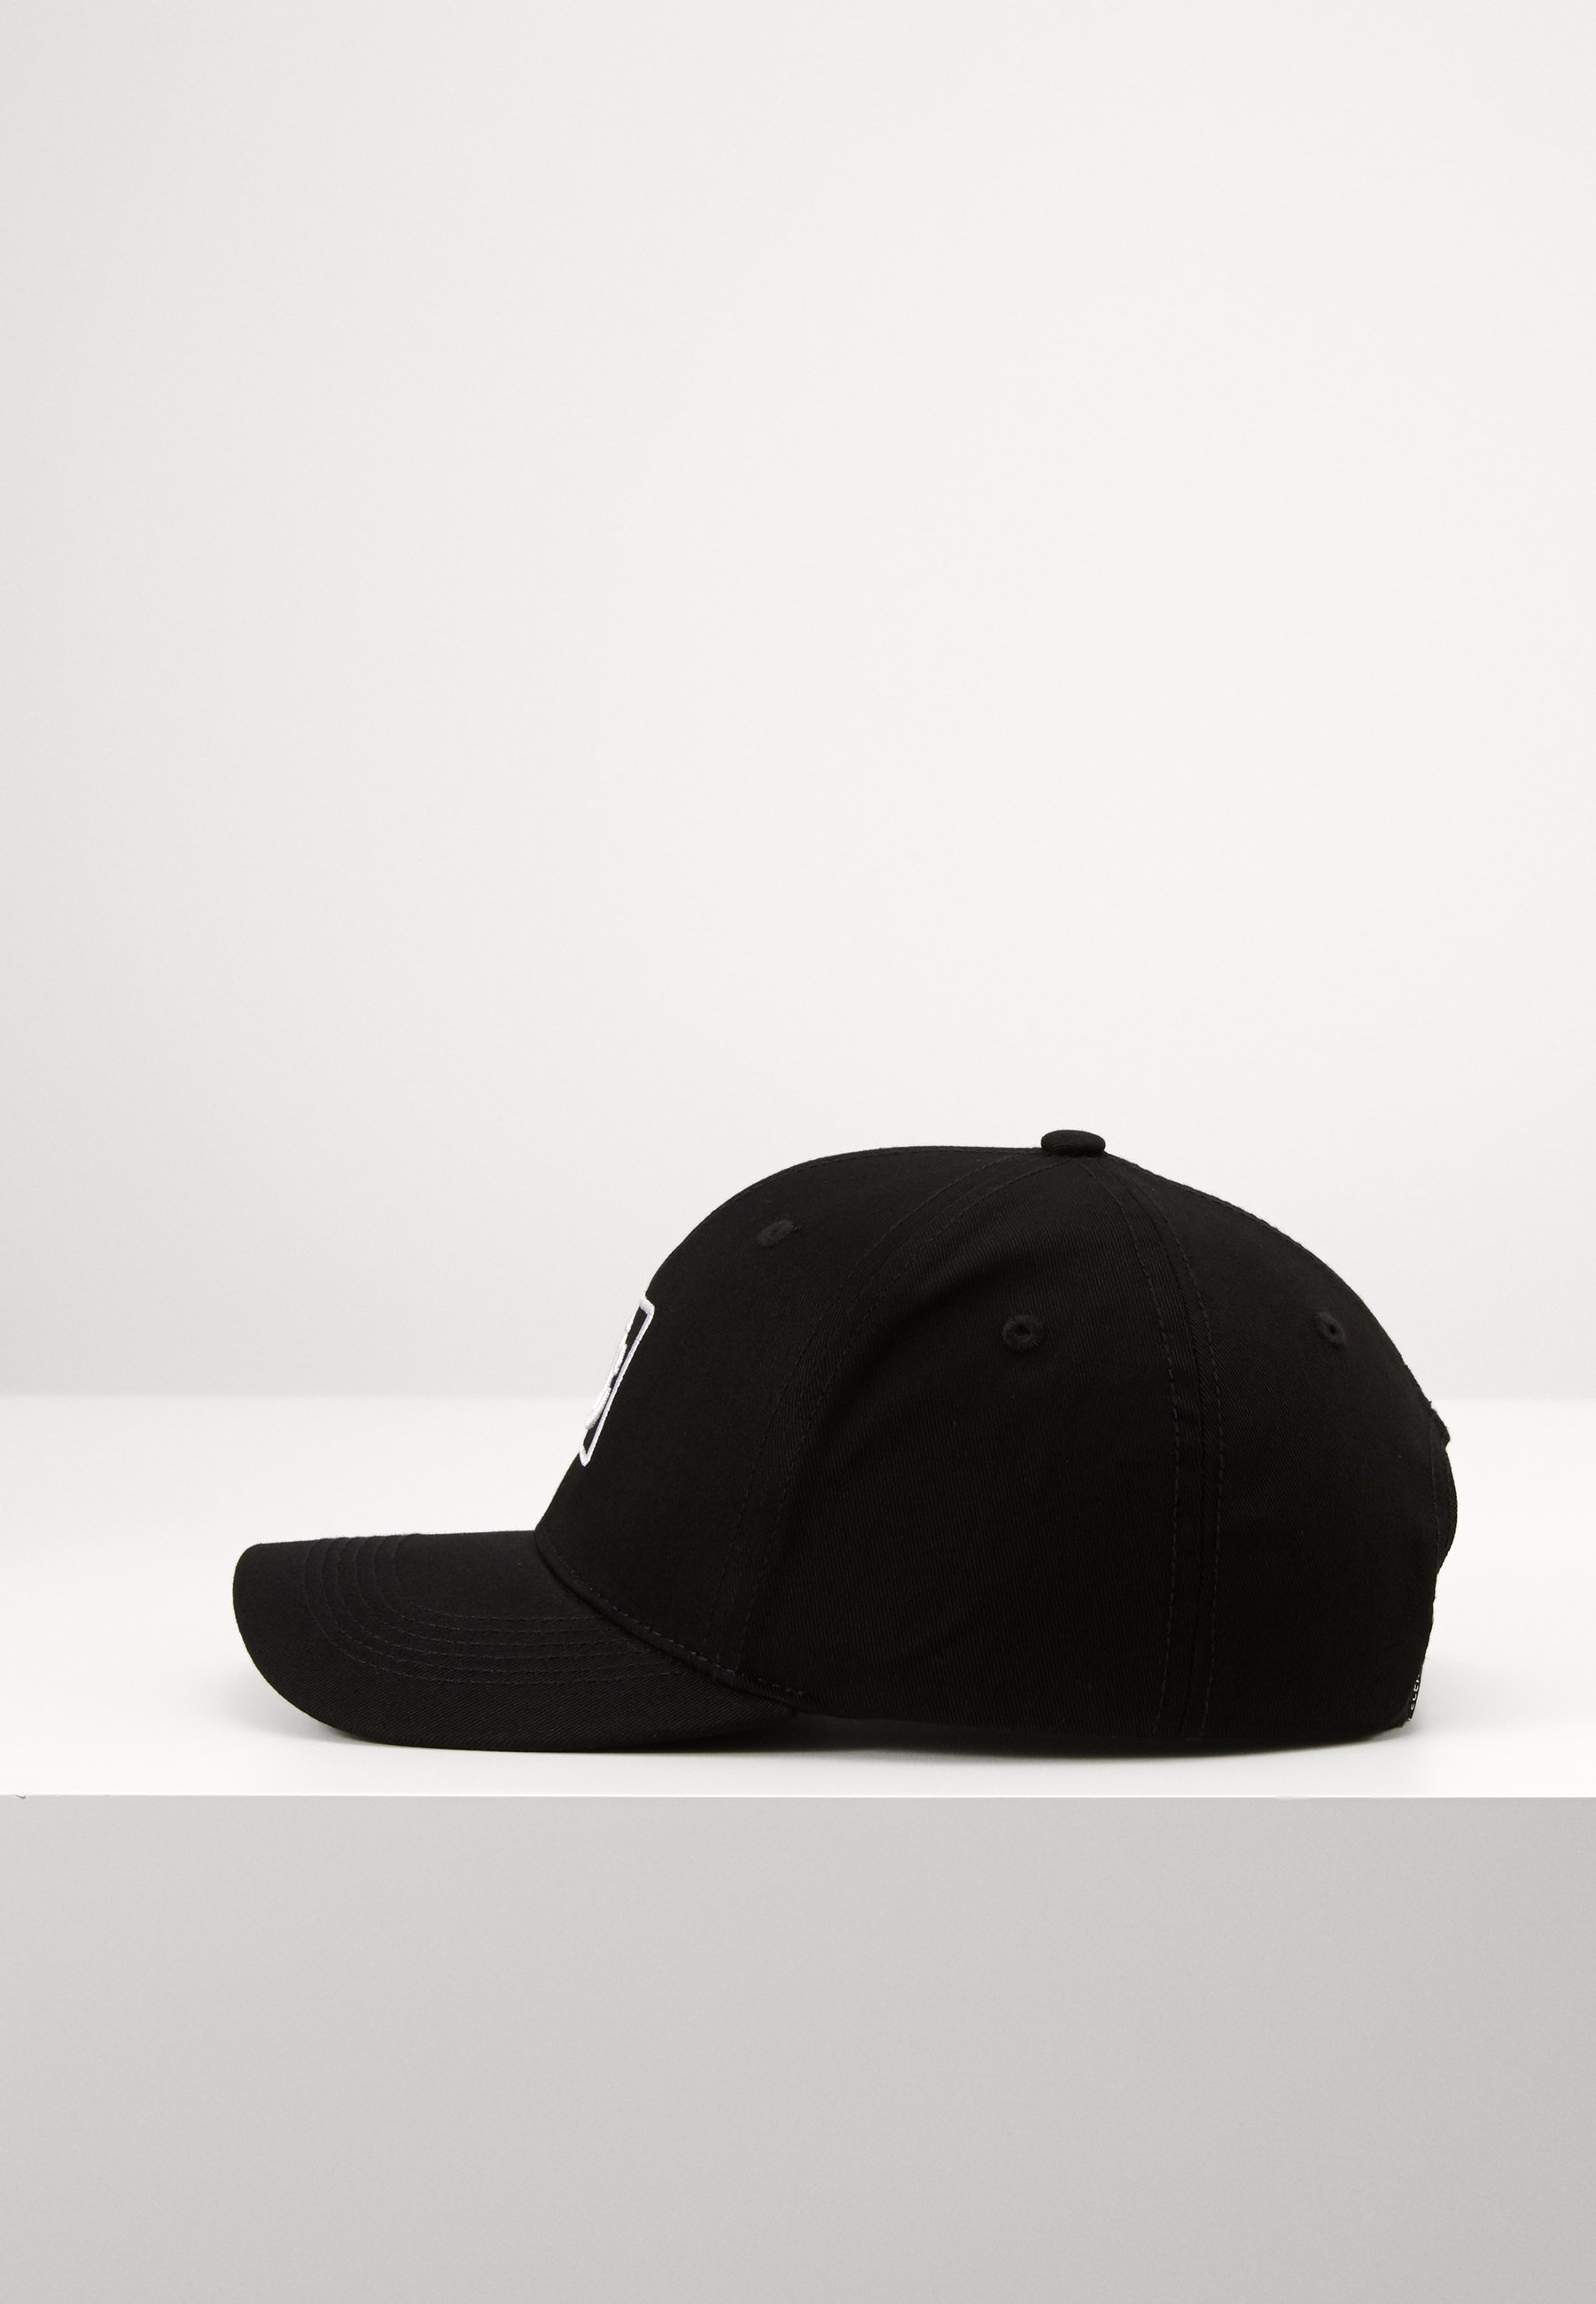 Element Treelogo - Cap Flint Black/schwarz